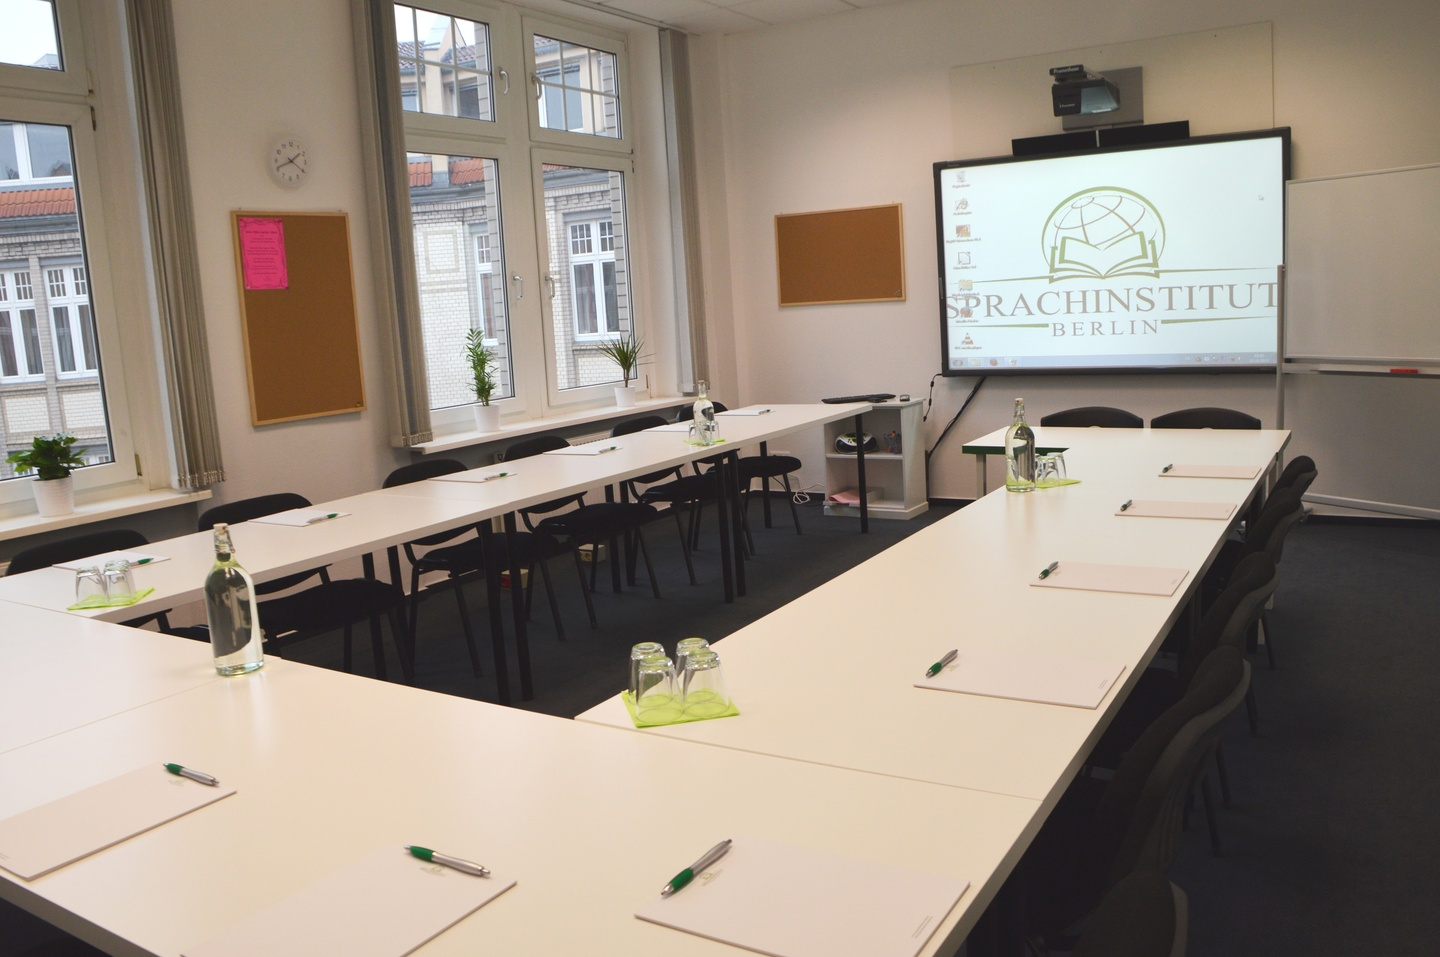 Berlin training rooms Meeting room Sprachinstitut Berlin - Room 2 image 0